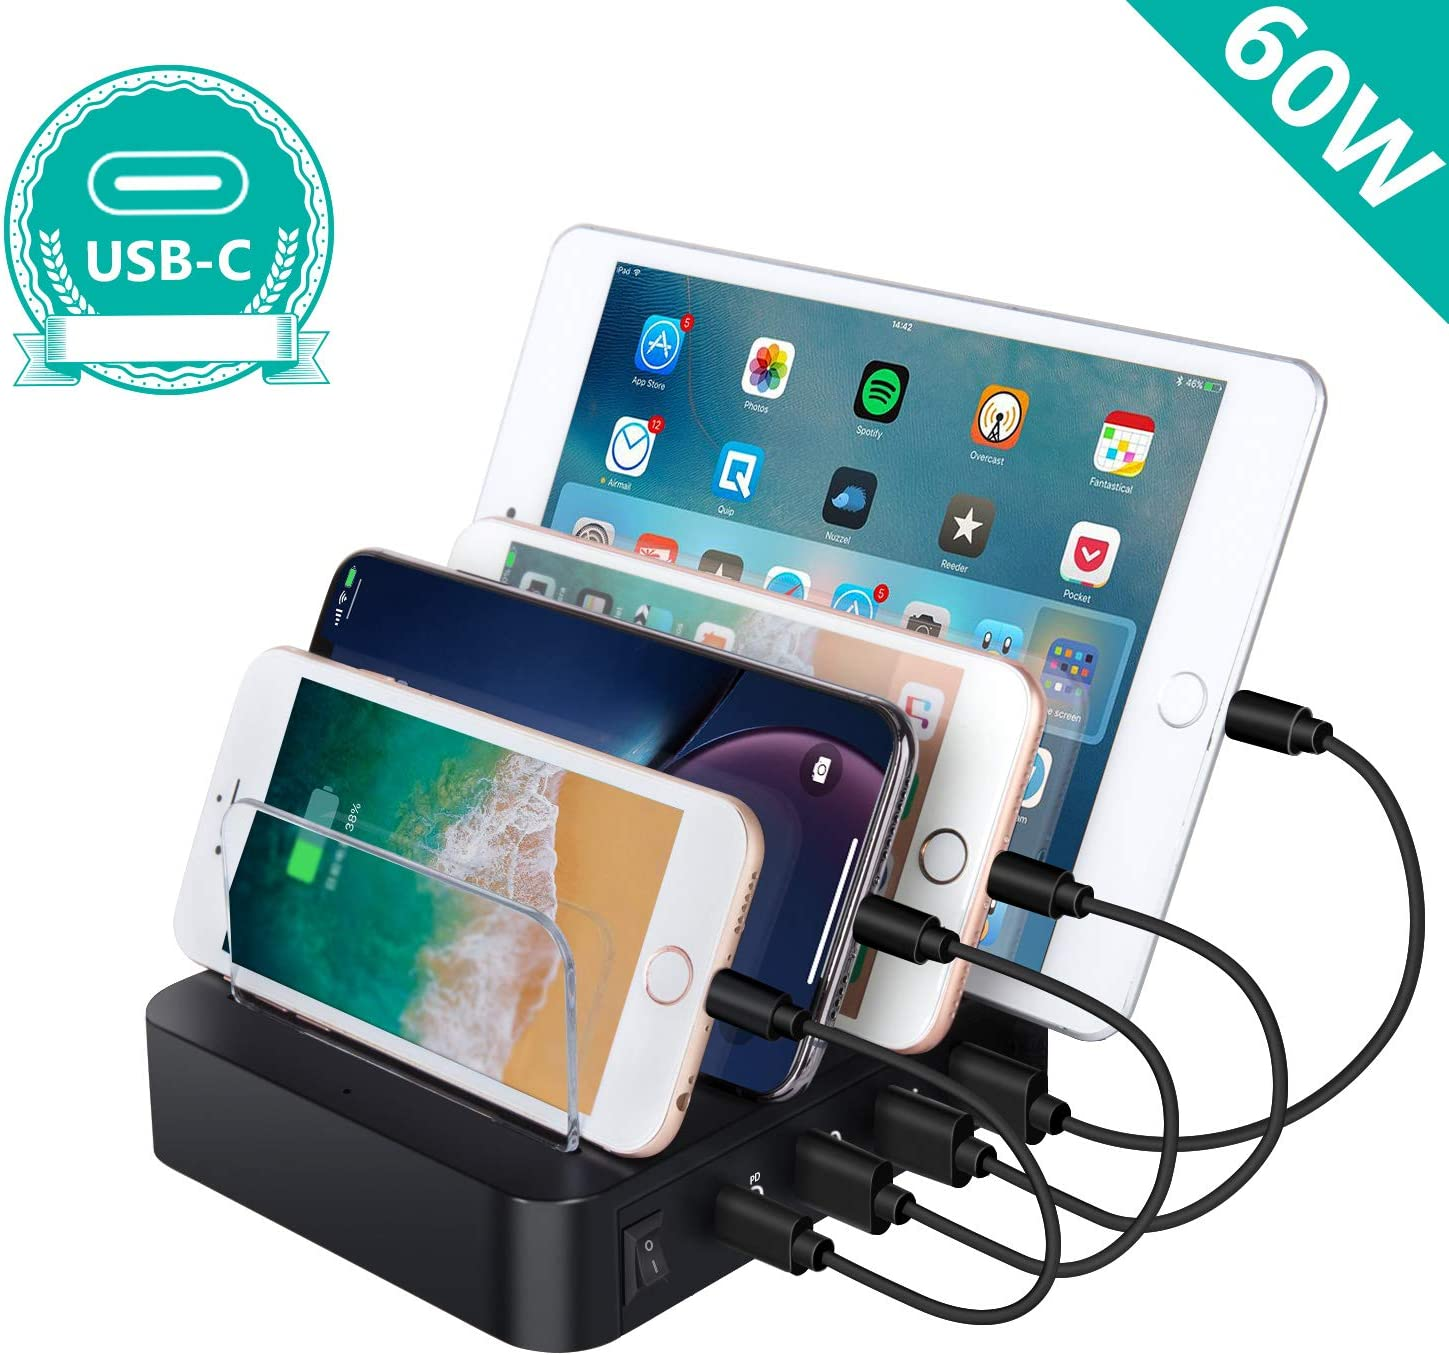 USB Charging Station, Premium 60W 4-Port Desktop Charger Organizer With 45W Power Delivery Port For USB-C Laptops, MacBook Pro/Air, iPad Pro, S10, And 3 USB Ports For iPhone 11/Pro/Max, S9/S8 and More